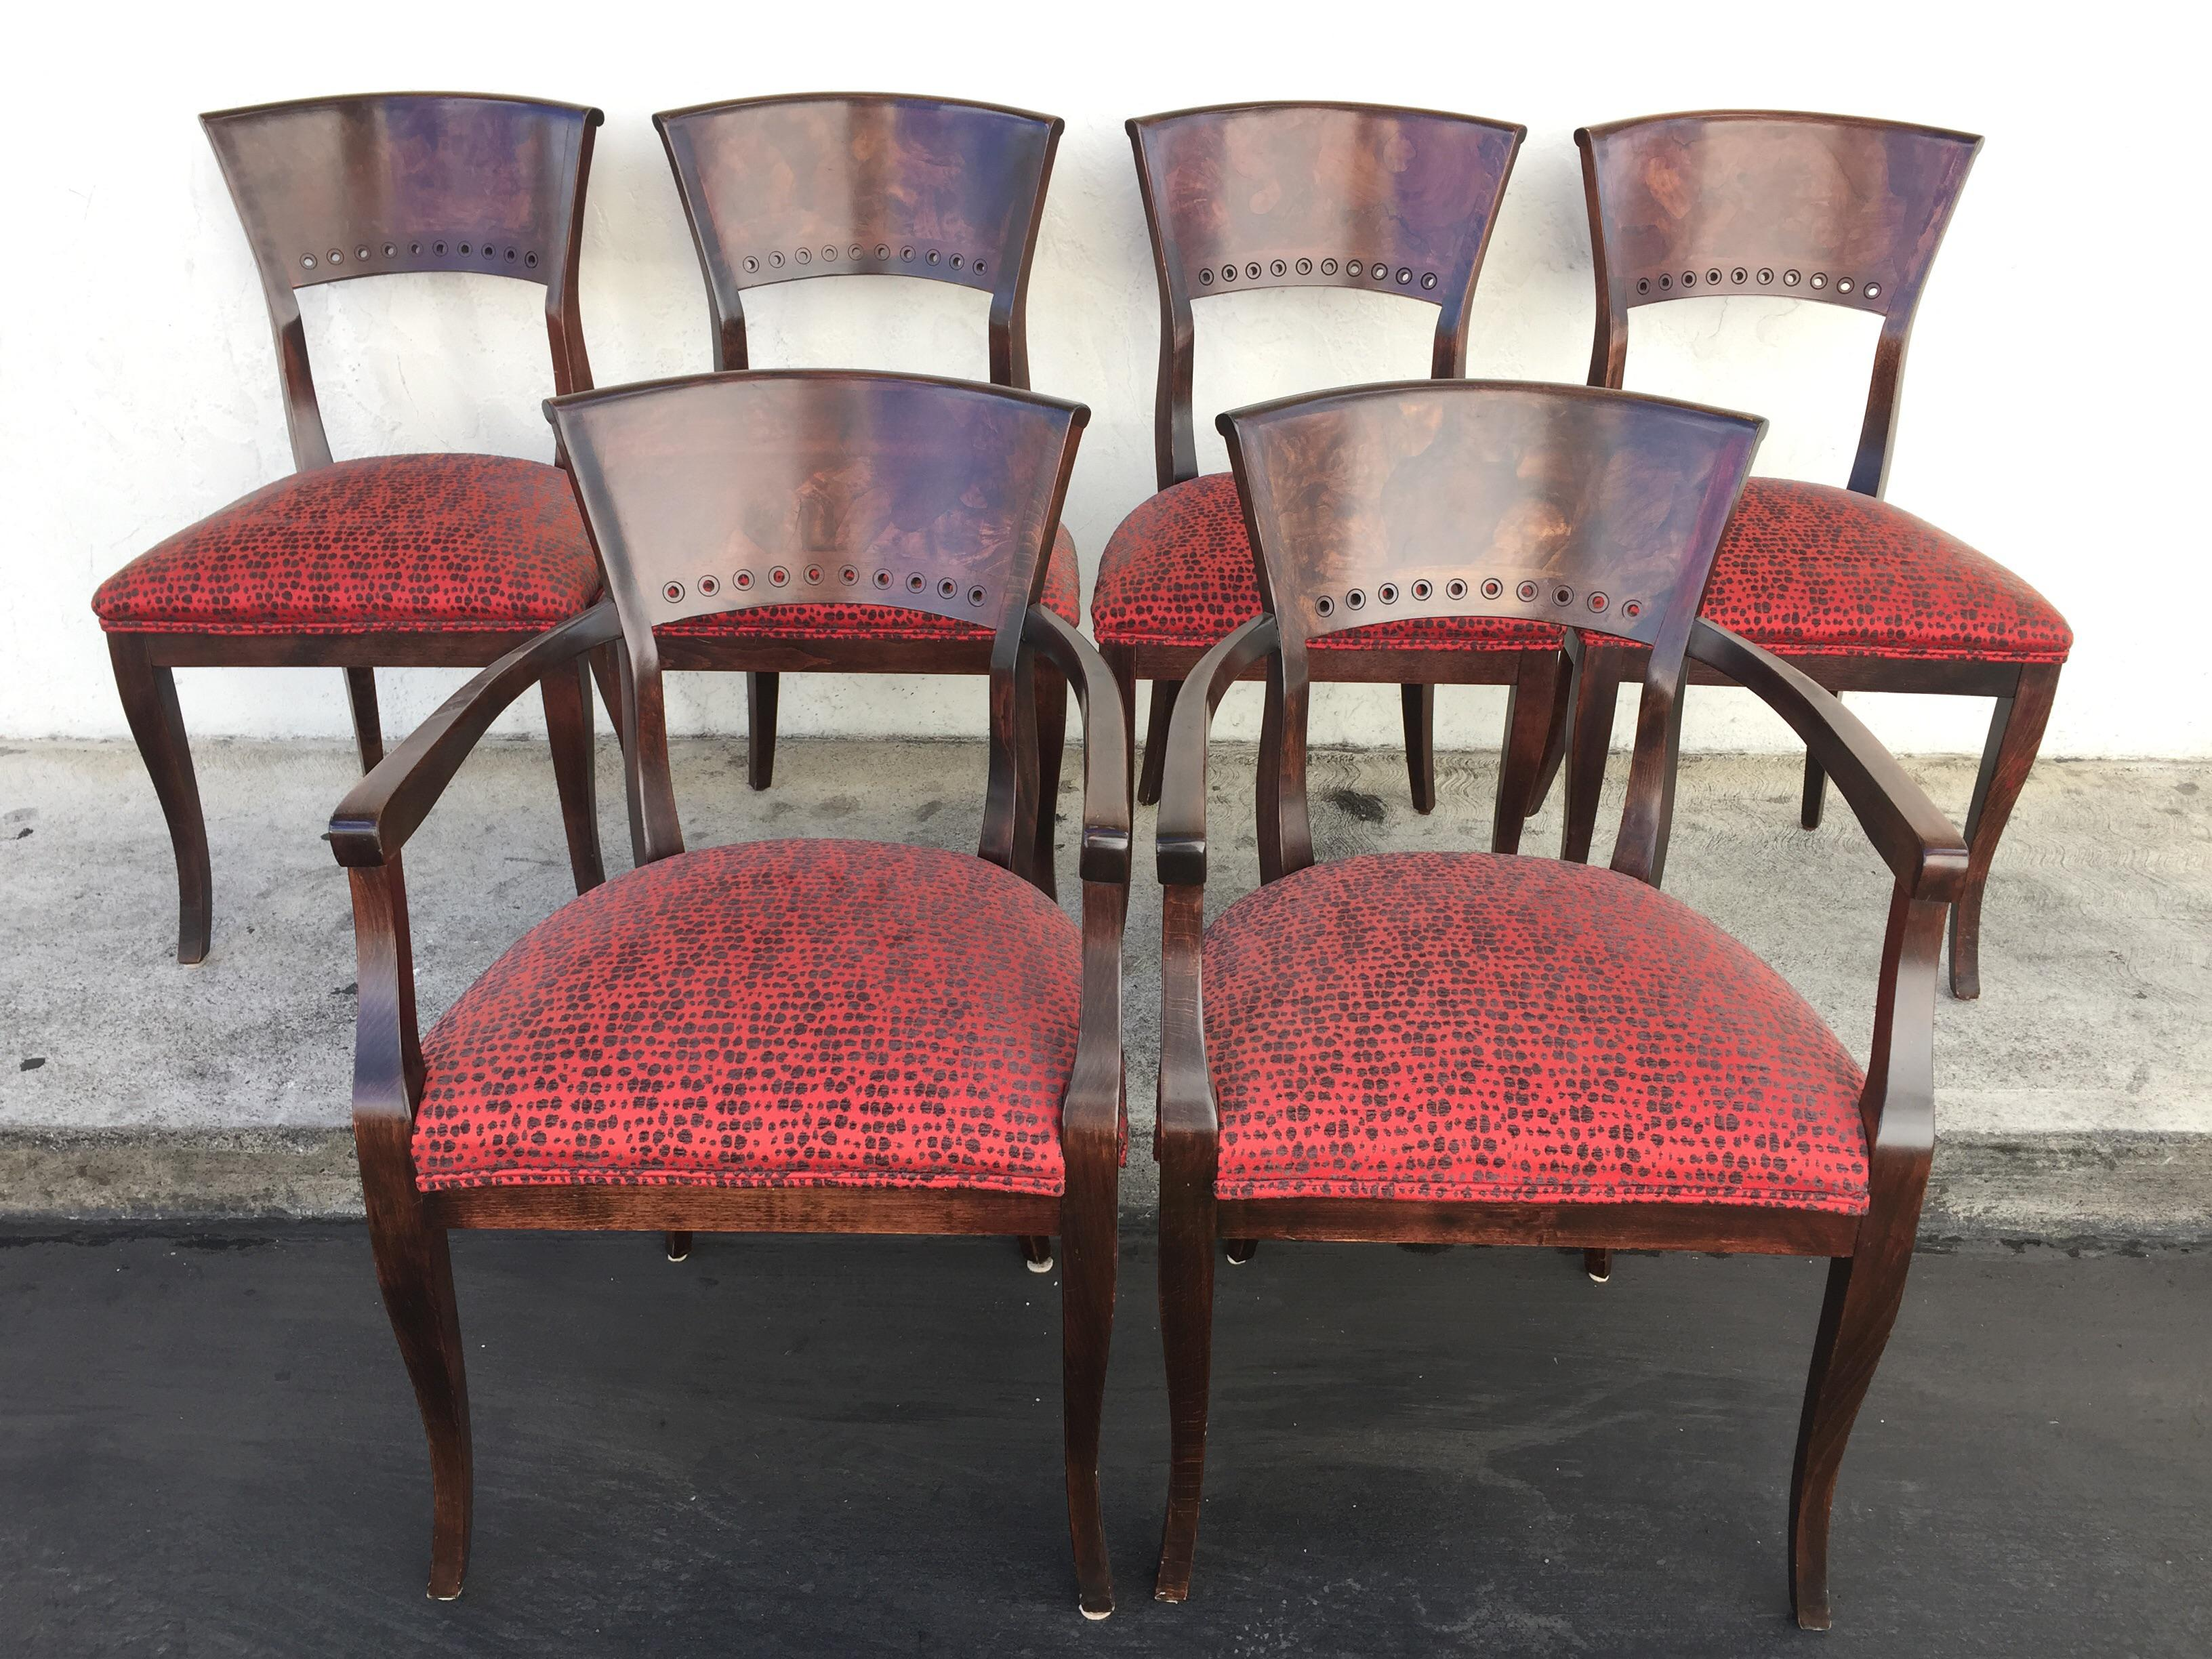 Italian Red Upholstered Wood Dining Chairs Set of 6